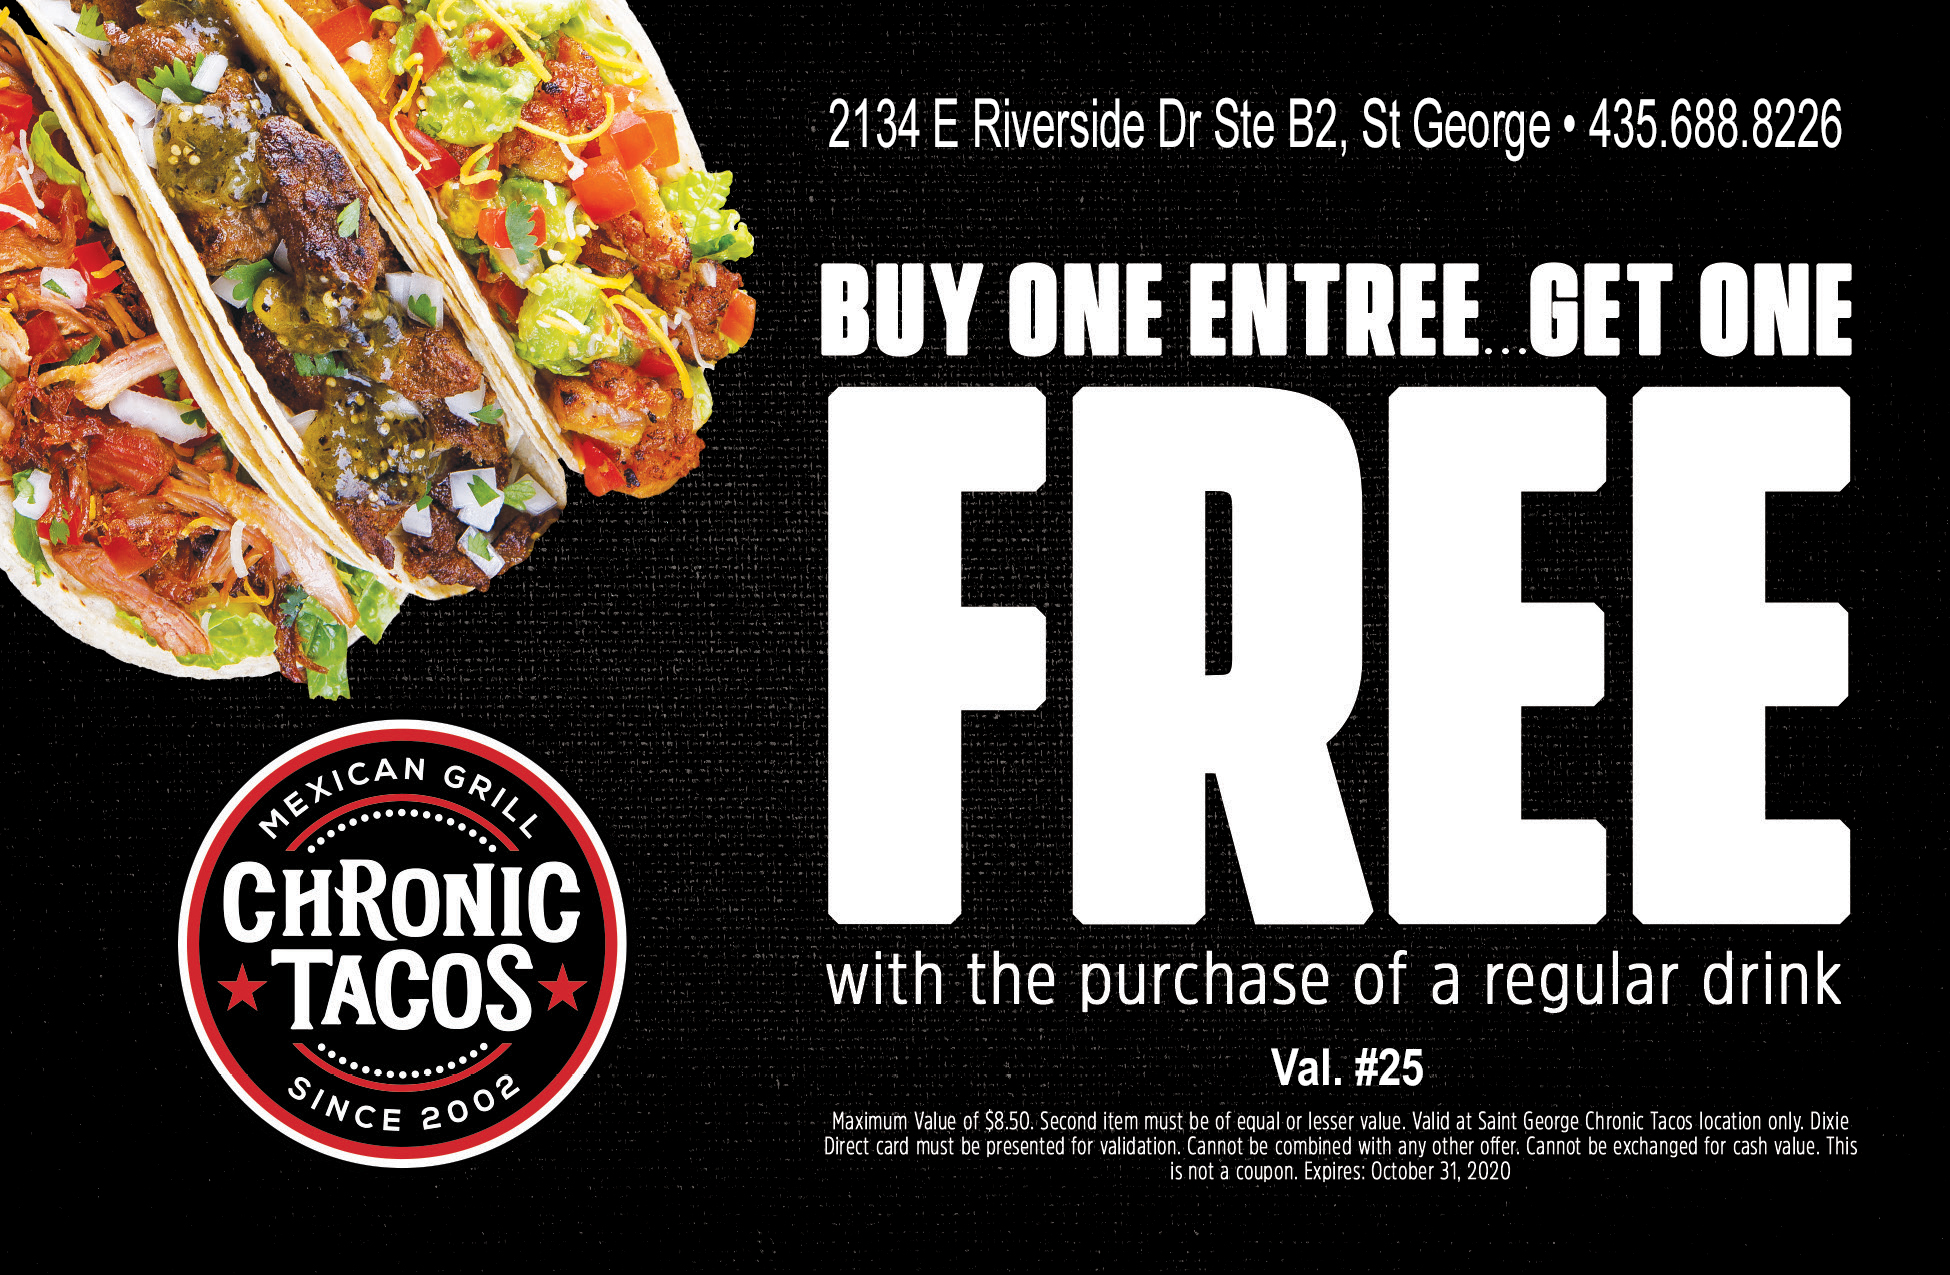 Chronic Tacos - Mexican Grill